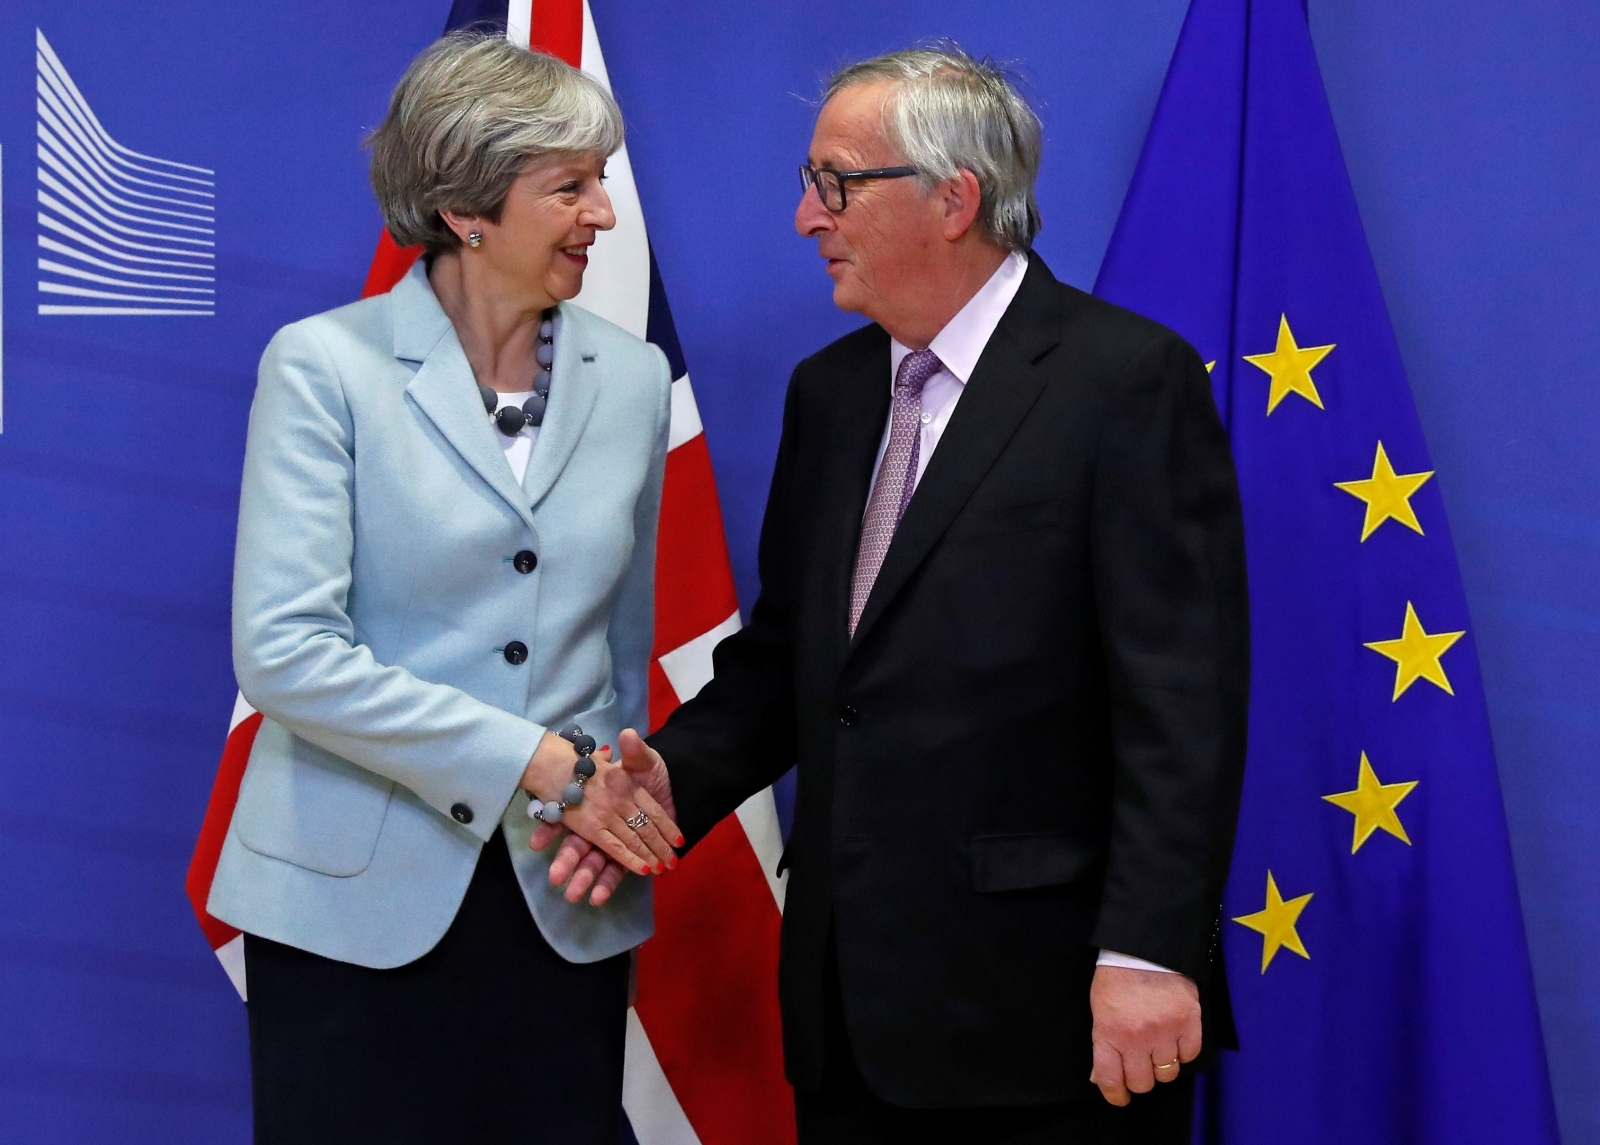 Theresa May Jean-Claude Juncker handshake